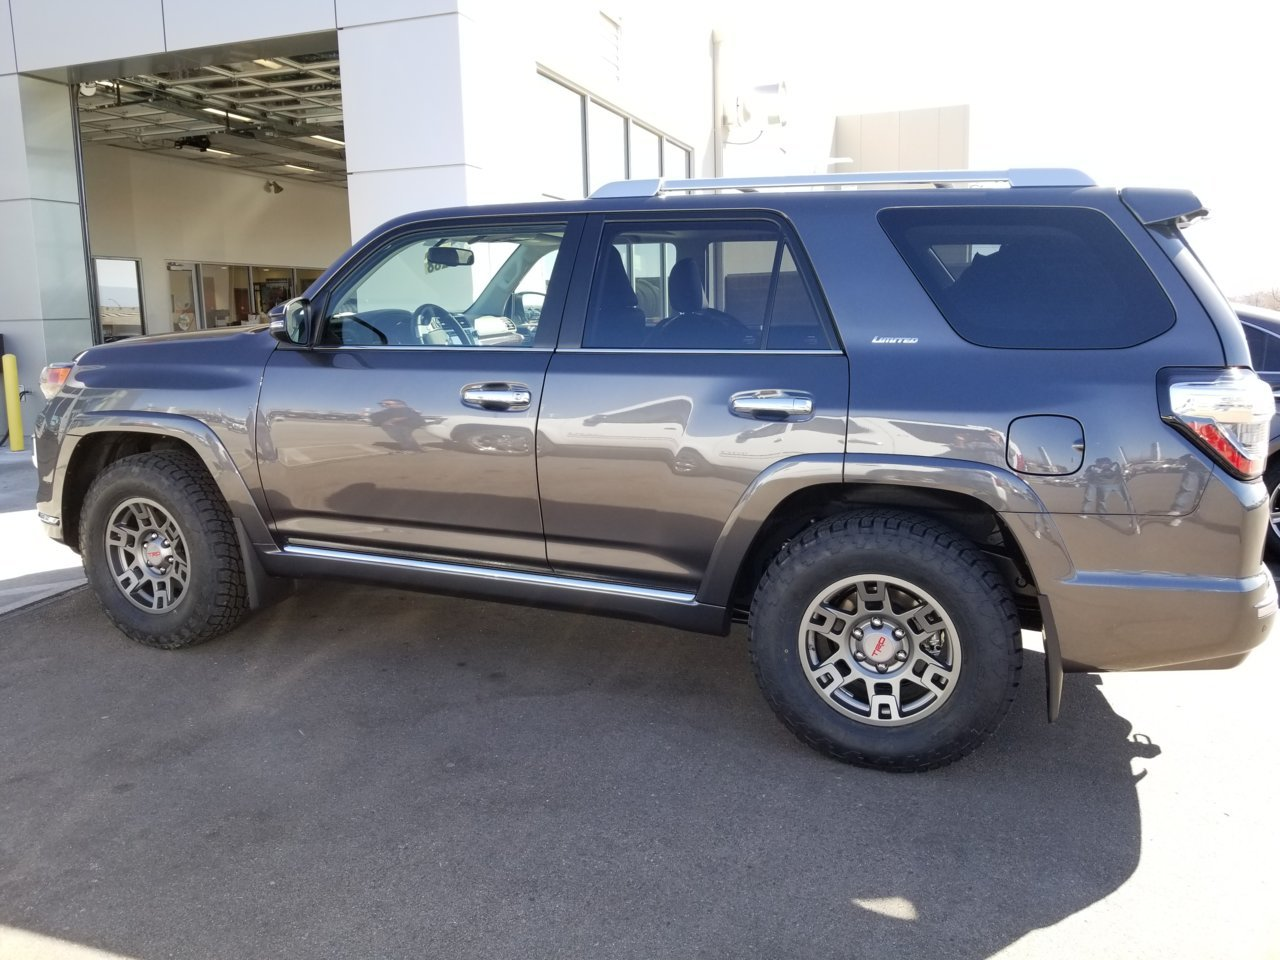 Snow Tires And Wheels For A 2018 Limited Toyota 4runner Forum 4runners Com